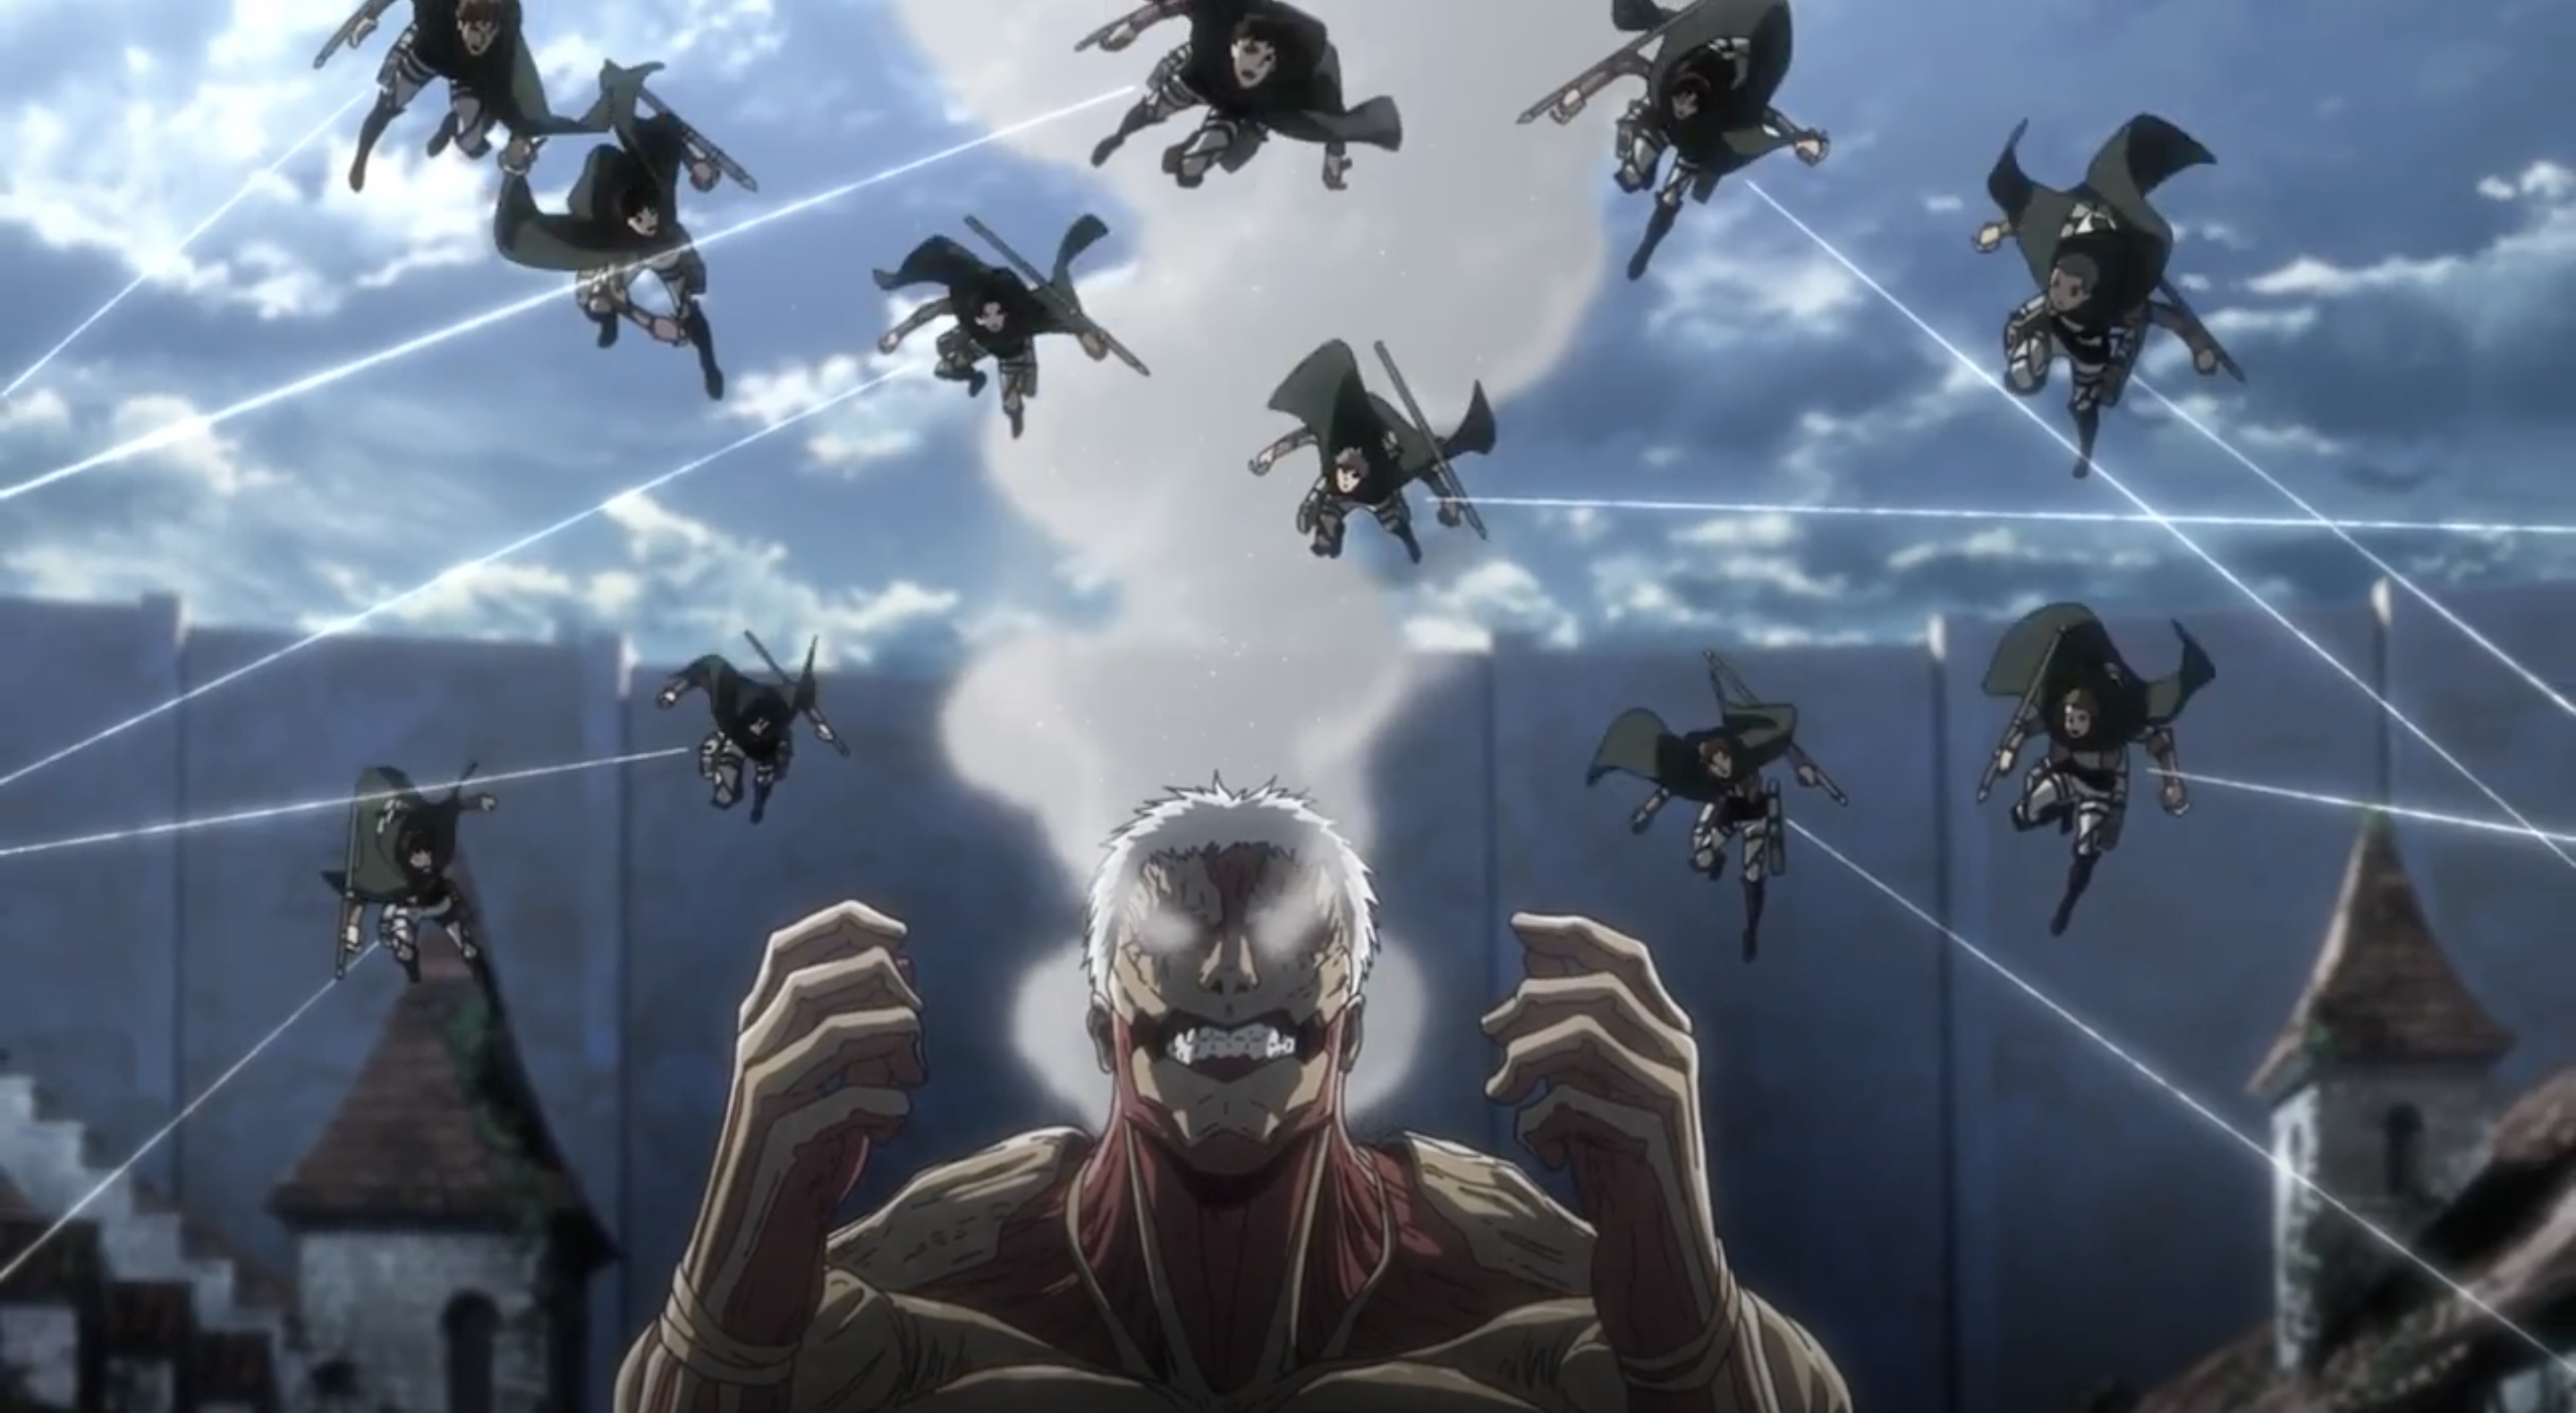 attack-on-titan-season-3-episode-14-thunder-spears.png